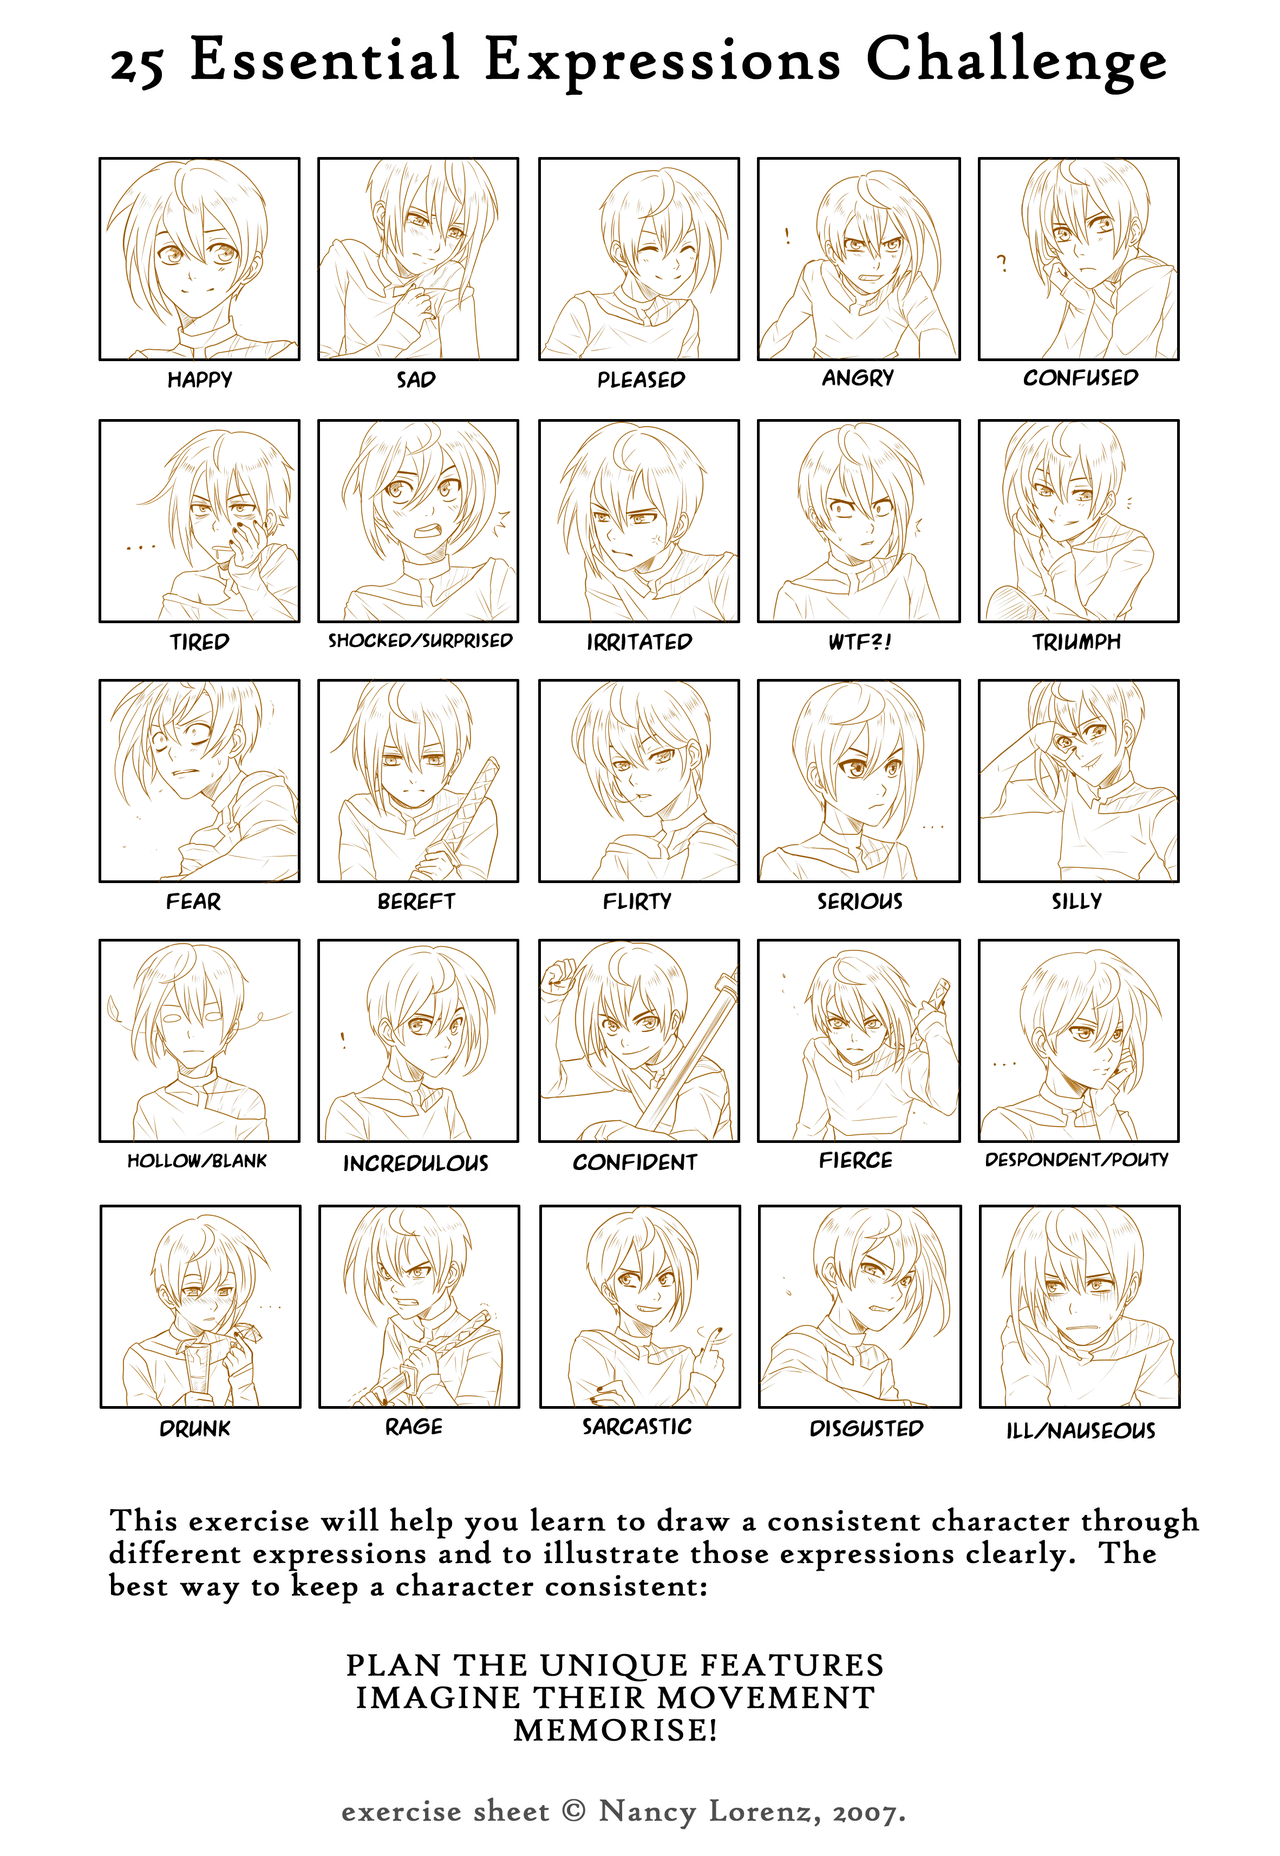 25 Essential Expressions Meme By Go Devil Daisukeviantart On Deviantart